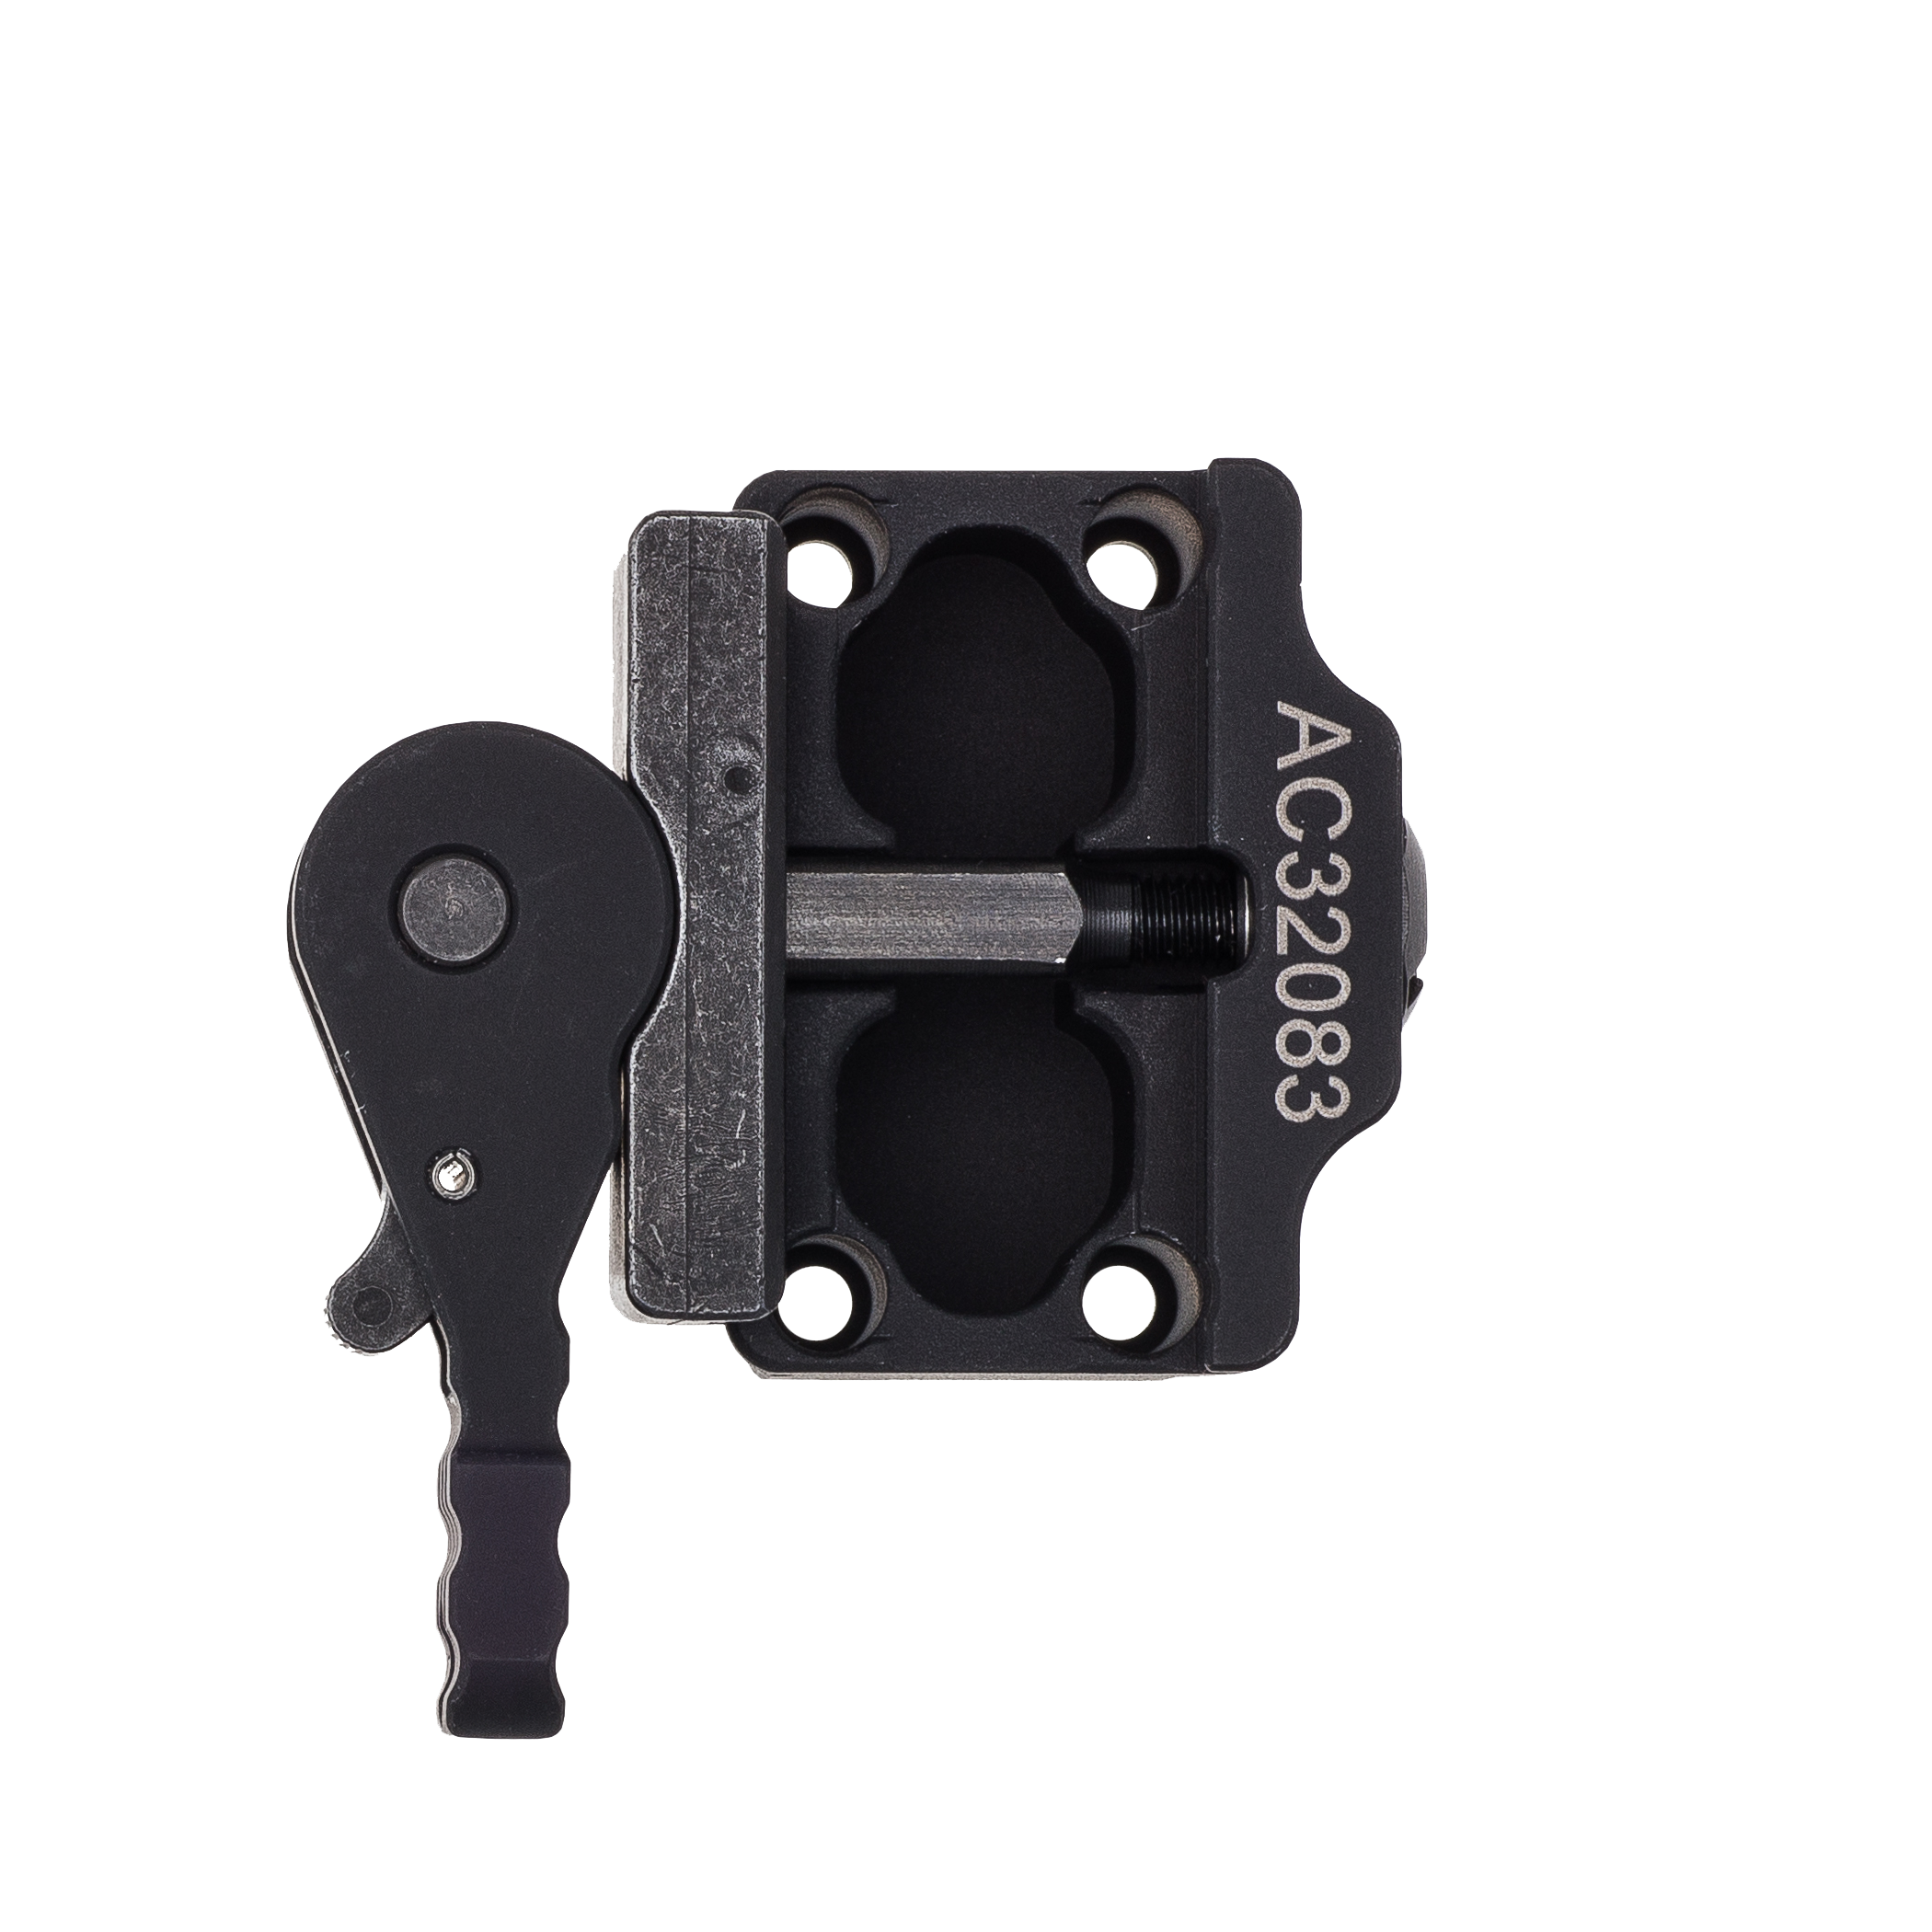 Mounting clip quick release. Trijicon mro levered full